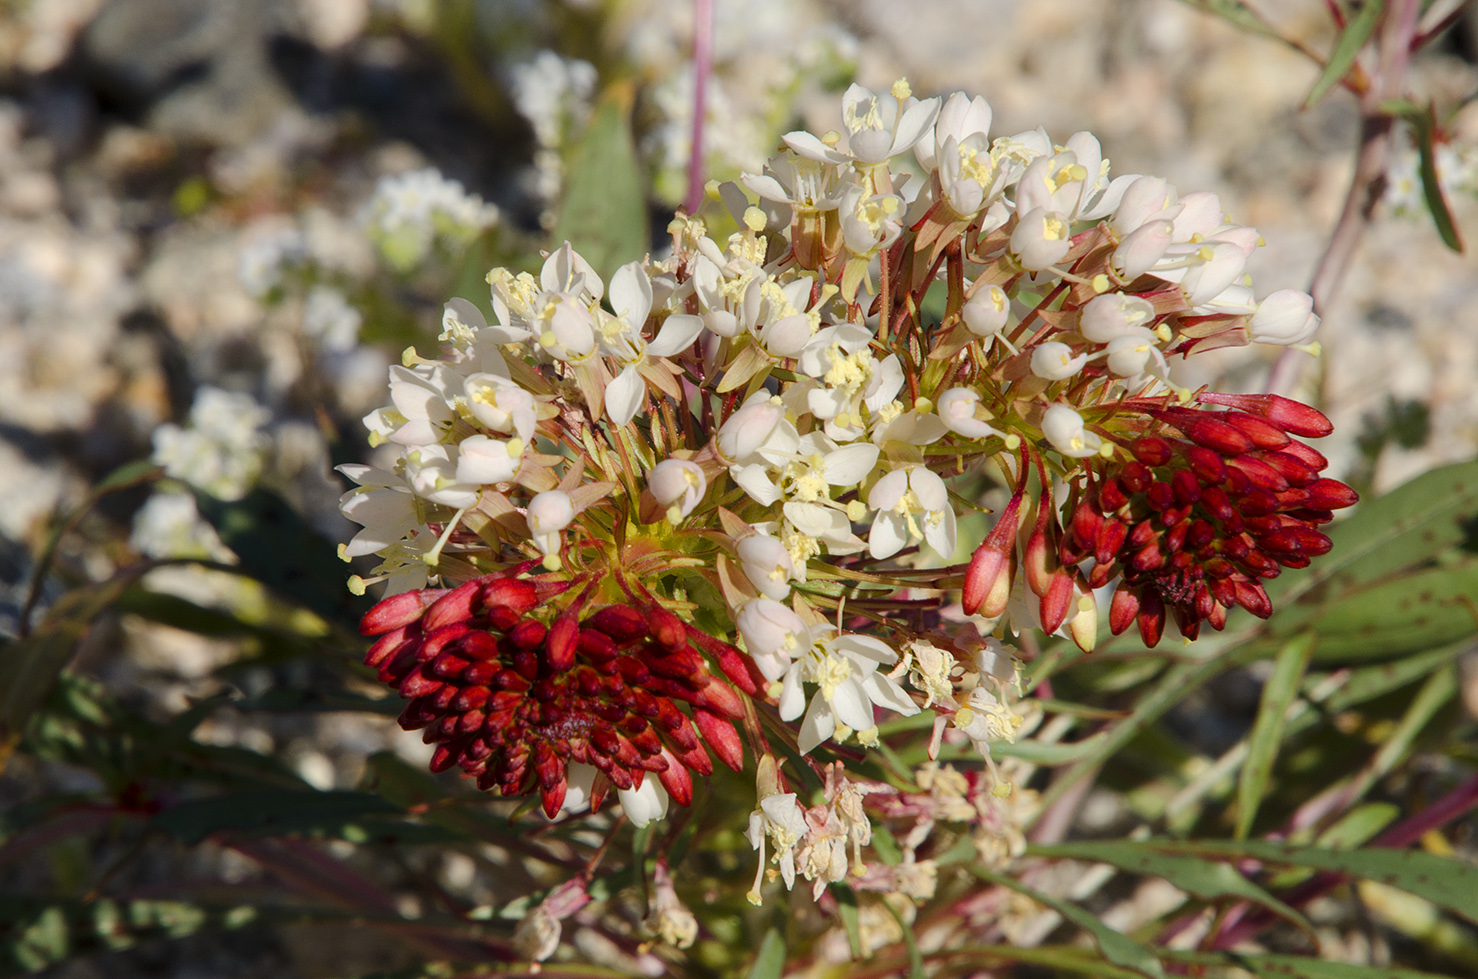 Joshua Tree National Park Wildflowers 39.jpg